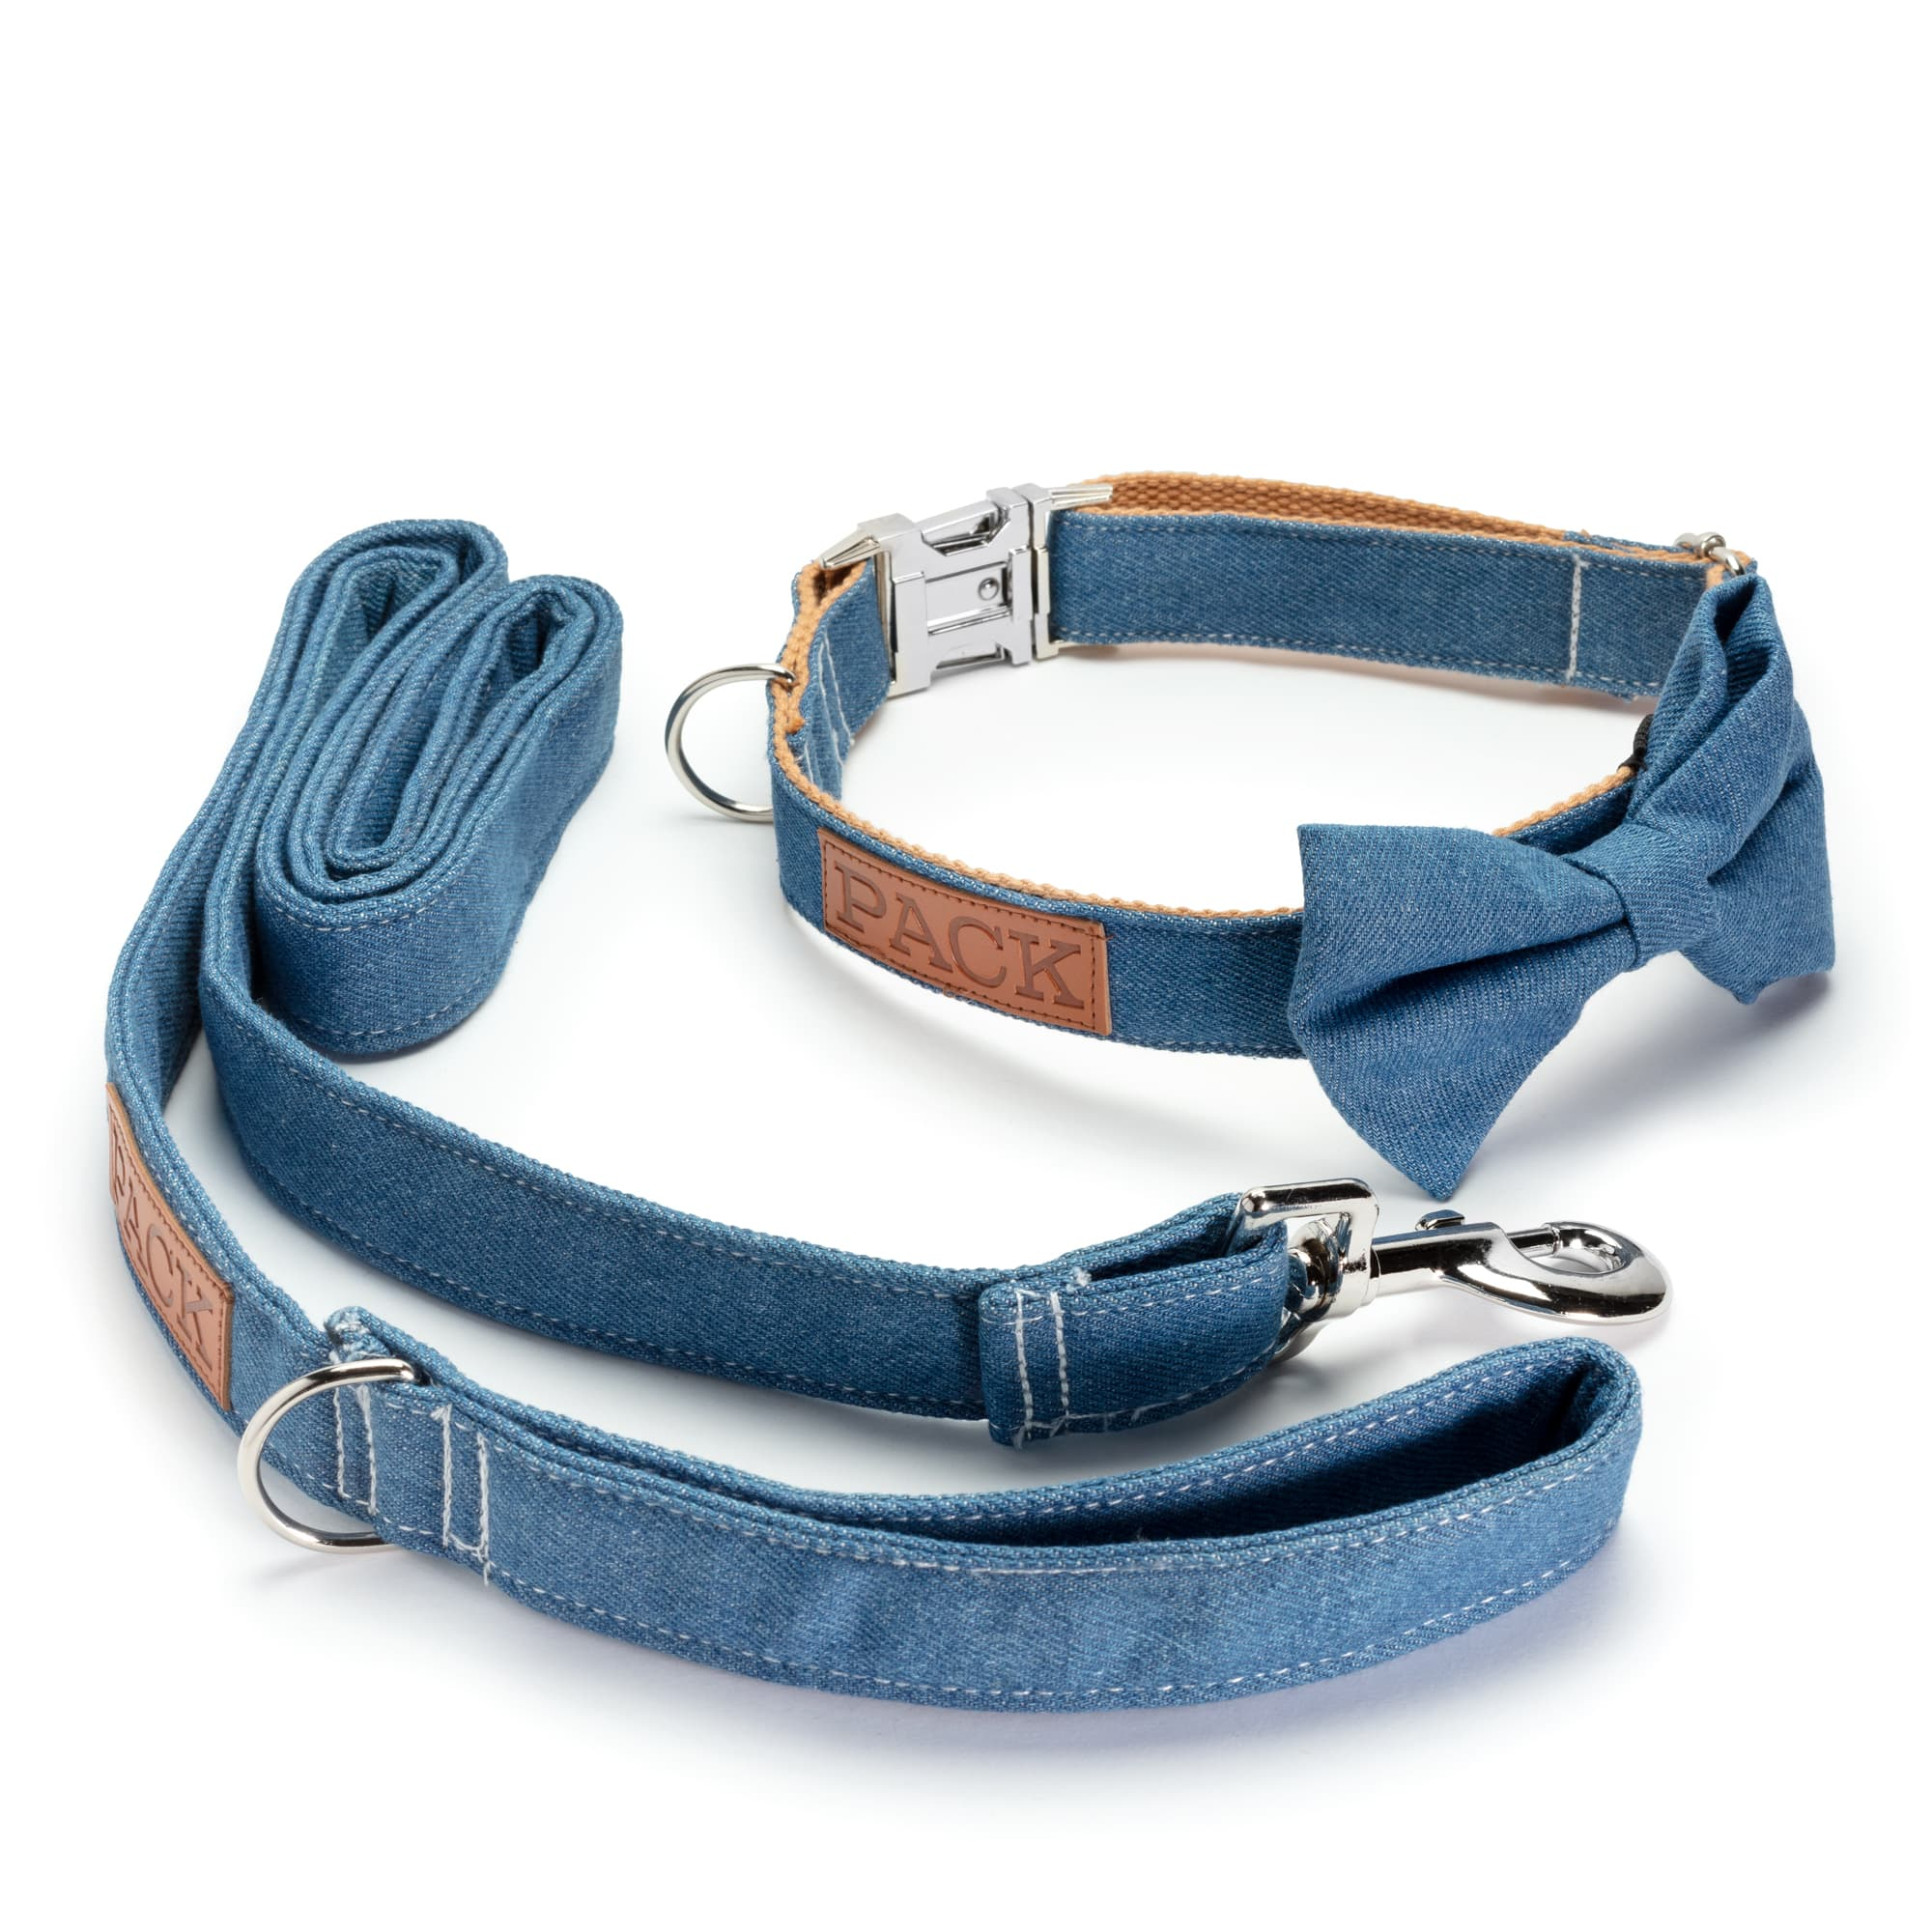 Denim + Rope Toy - Free Product